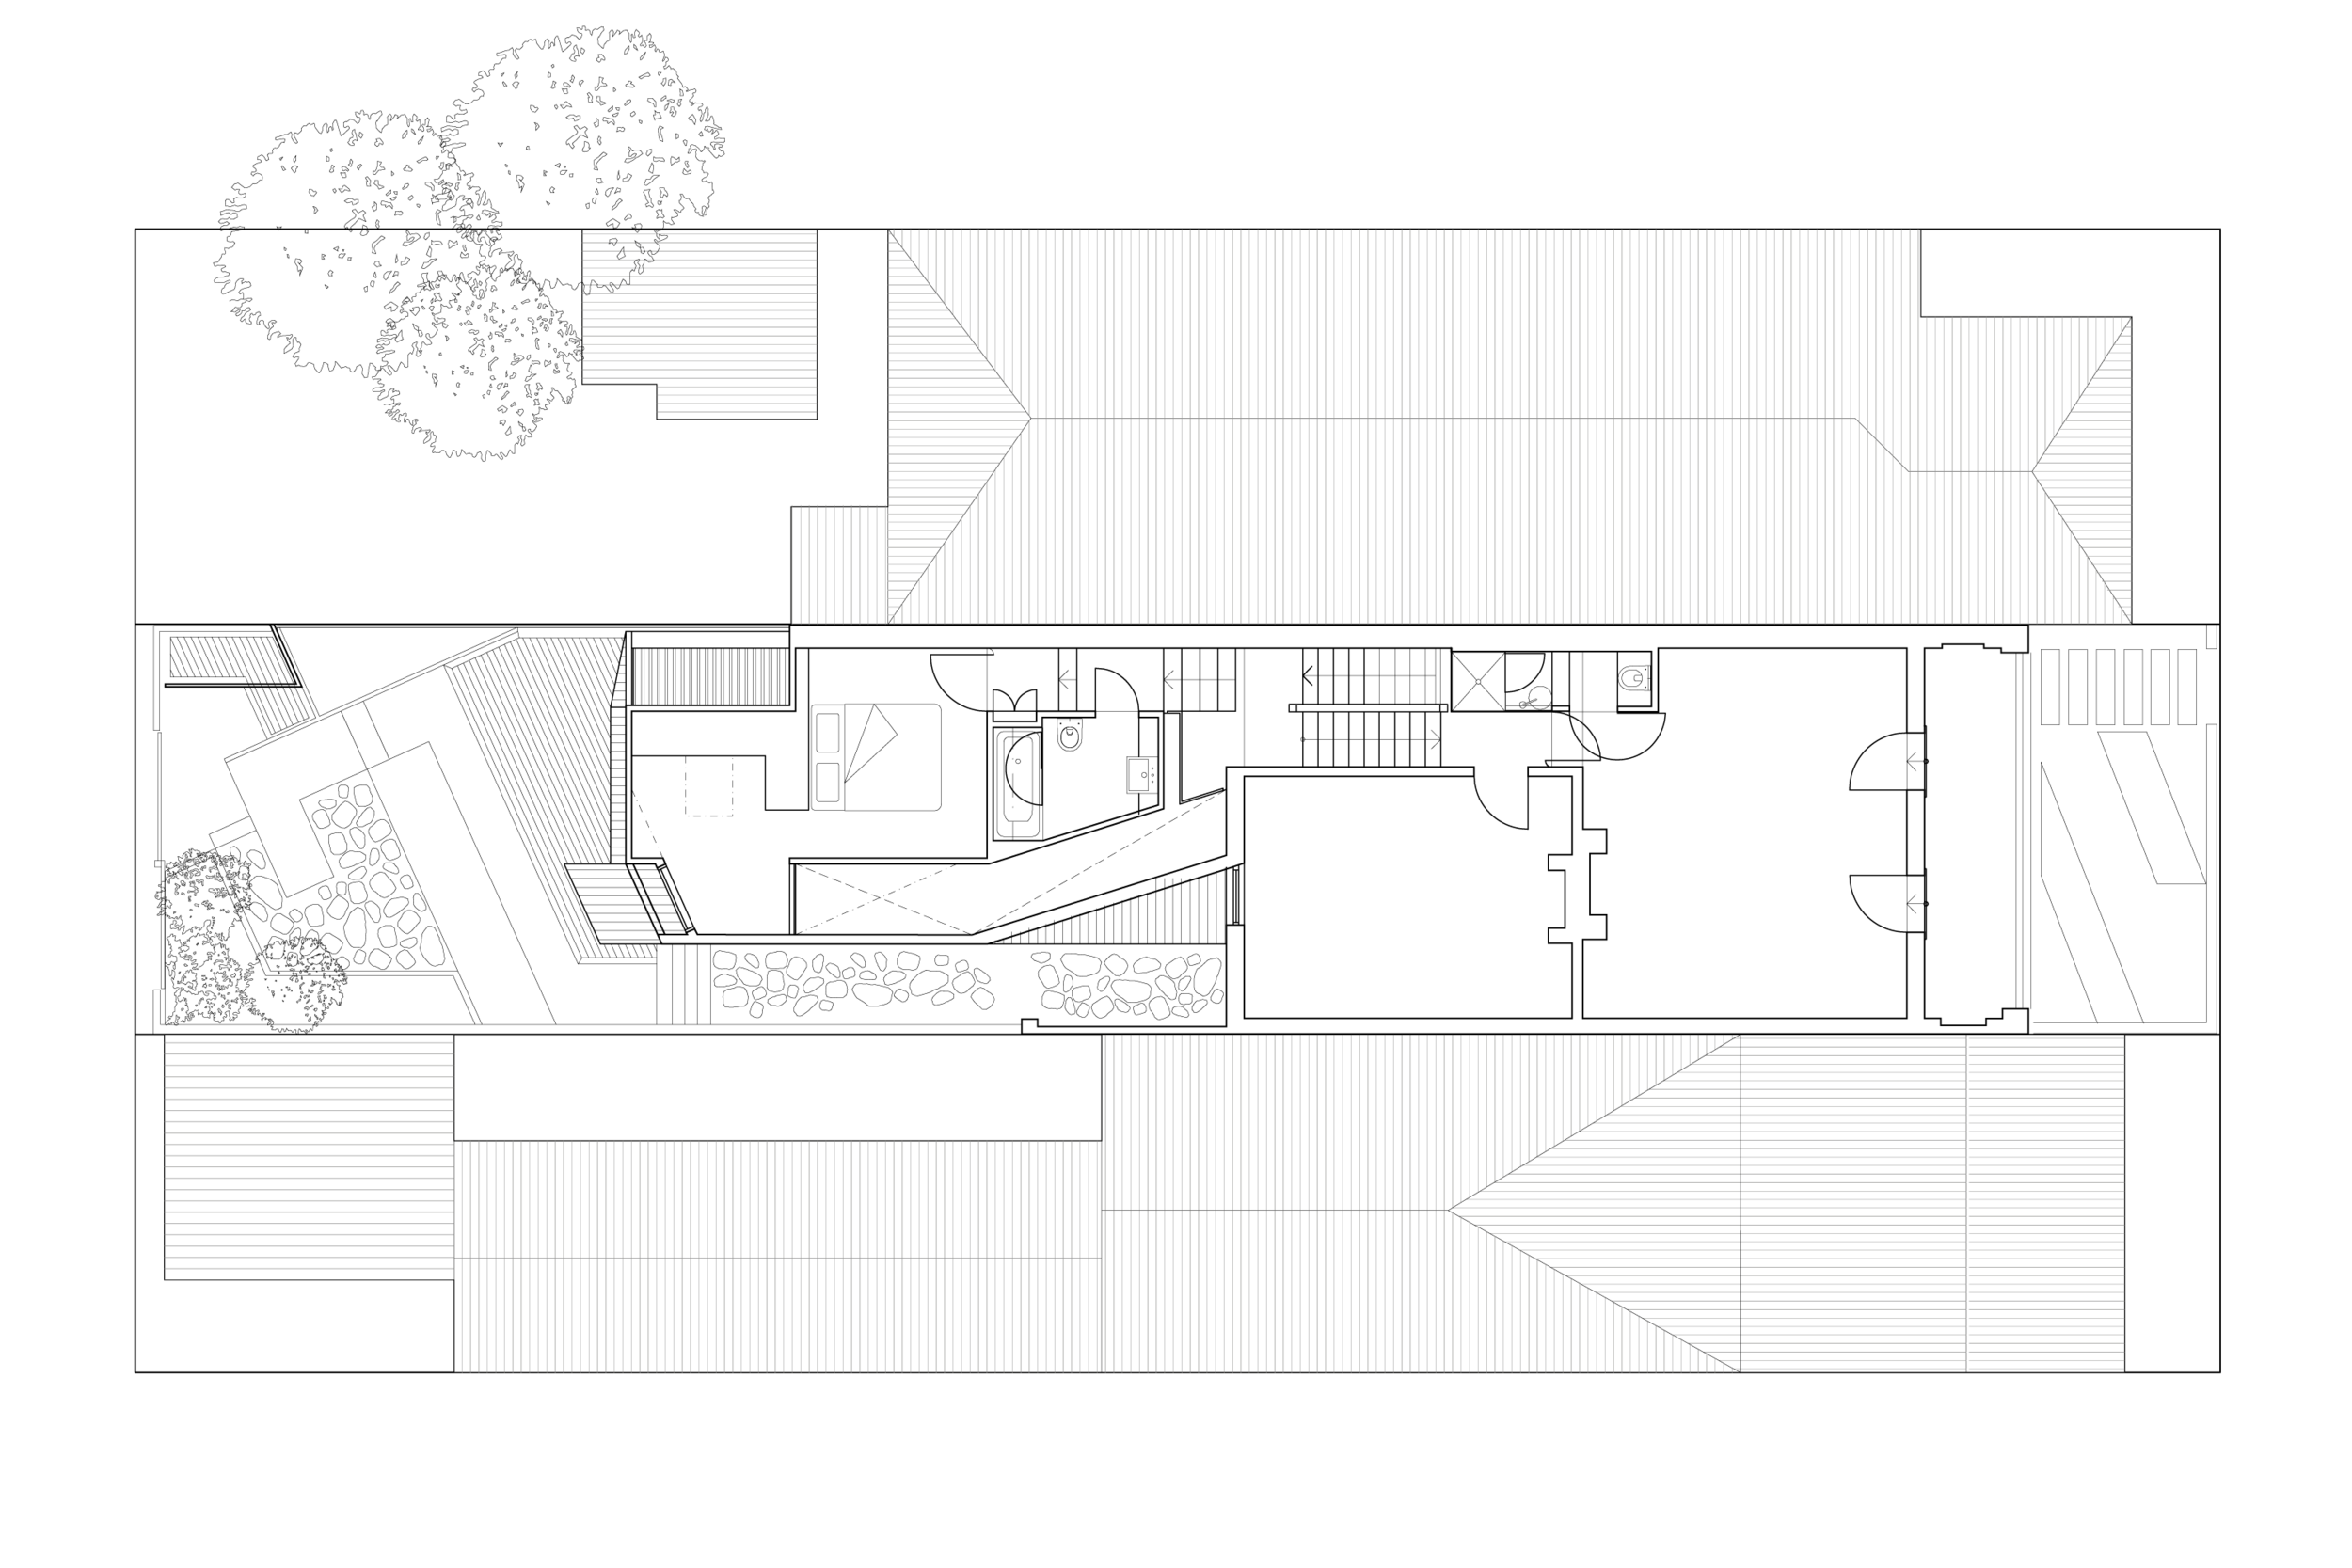 first_floor_plan_1_200-web.png